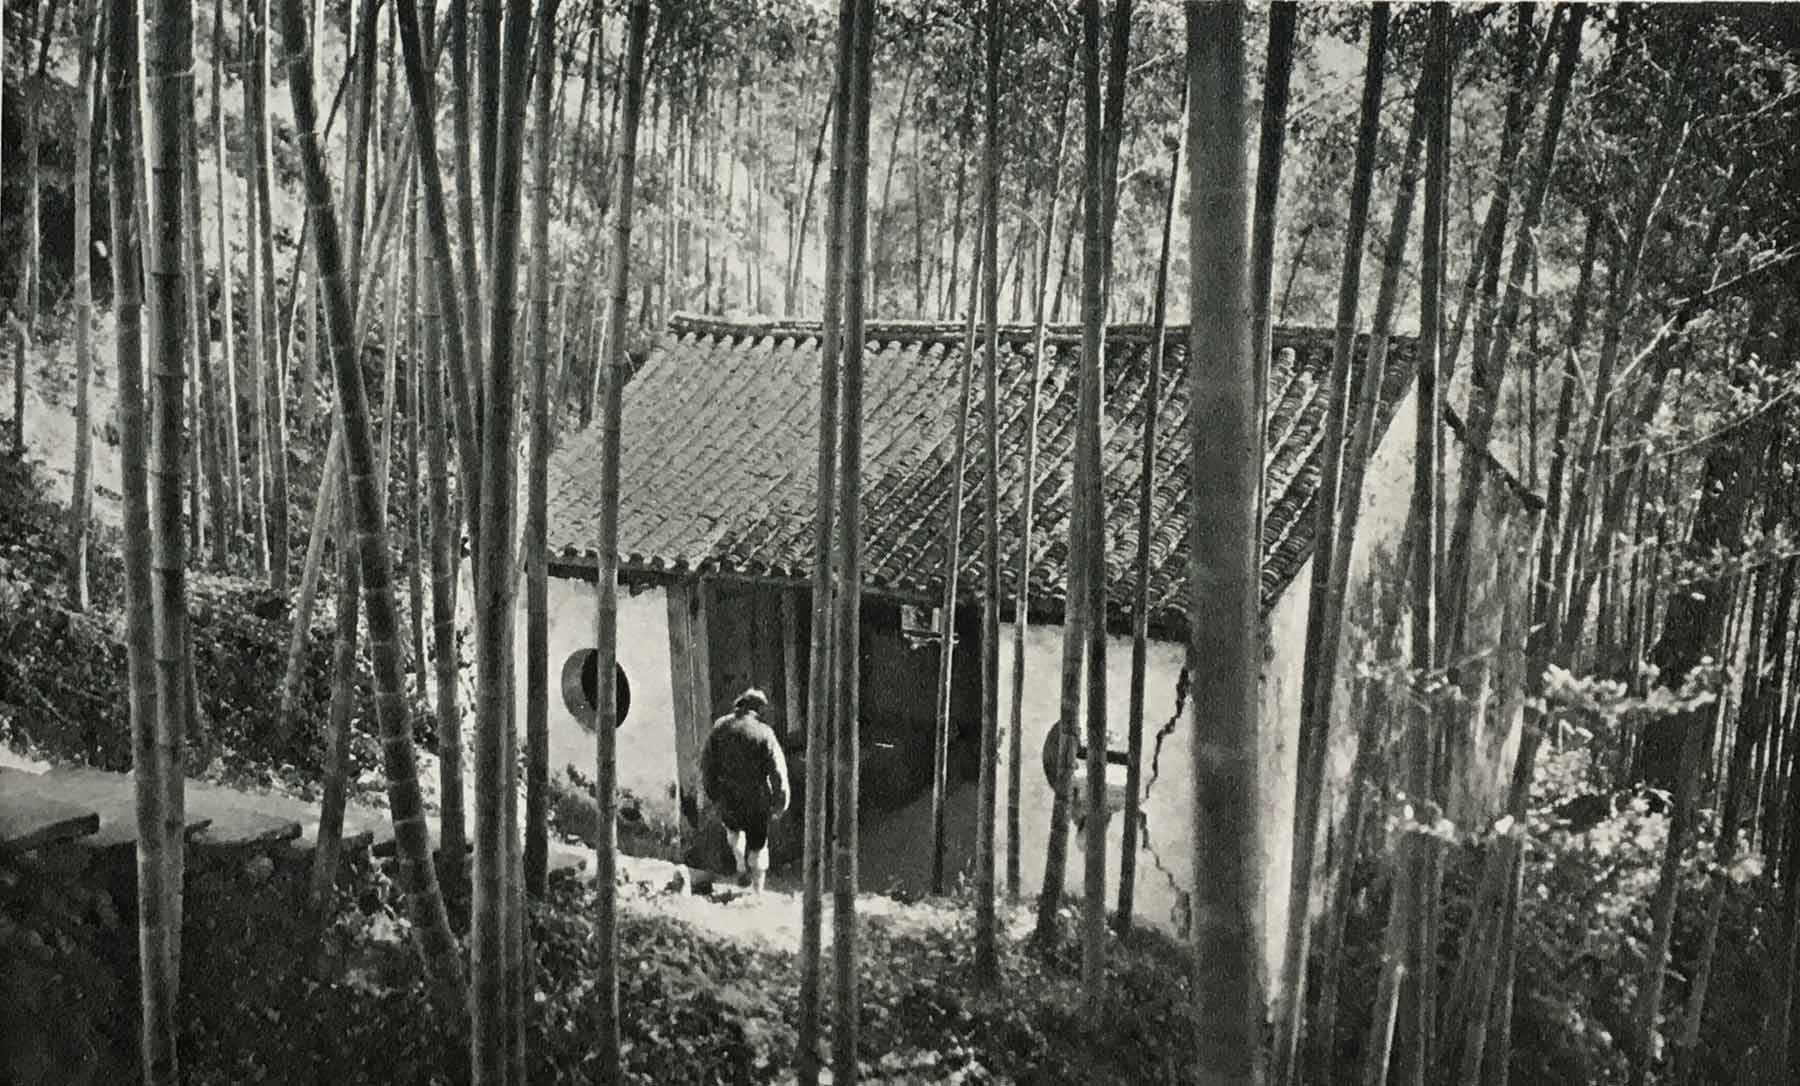 Pavilion over ravine and bamboo grove in Chinese garden, circa 1949